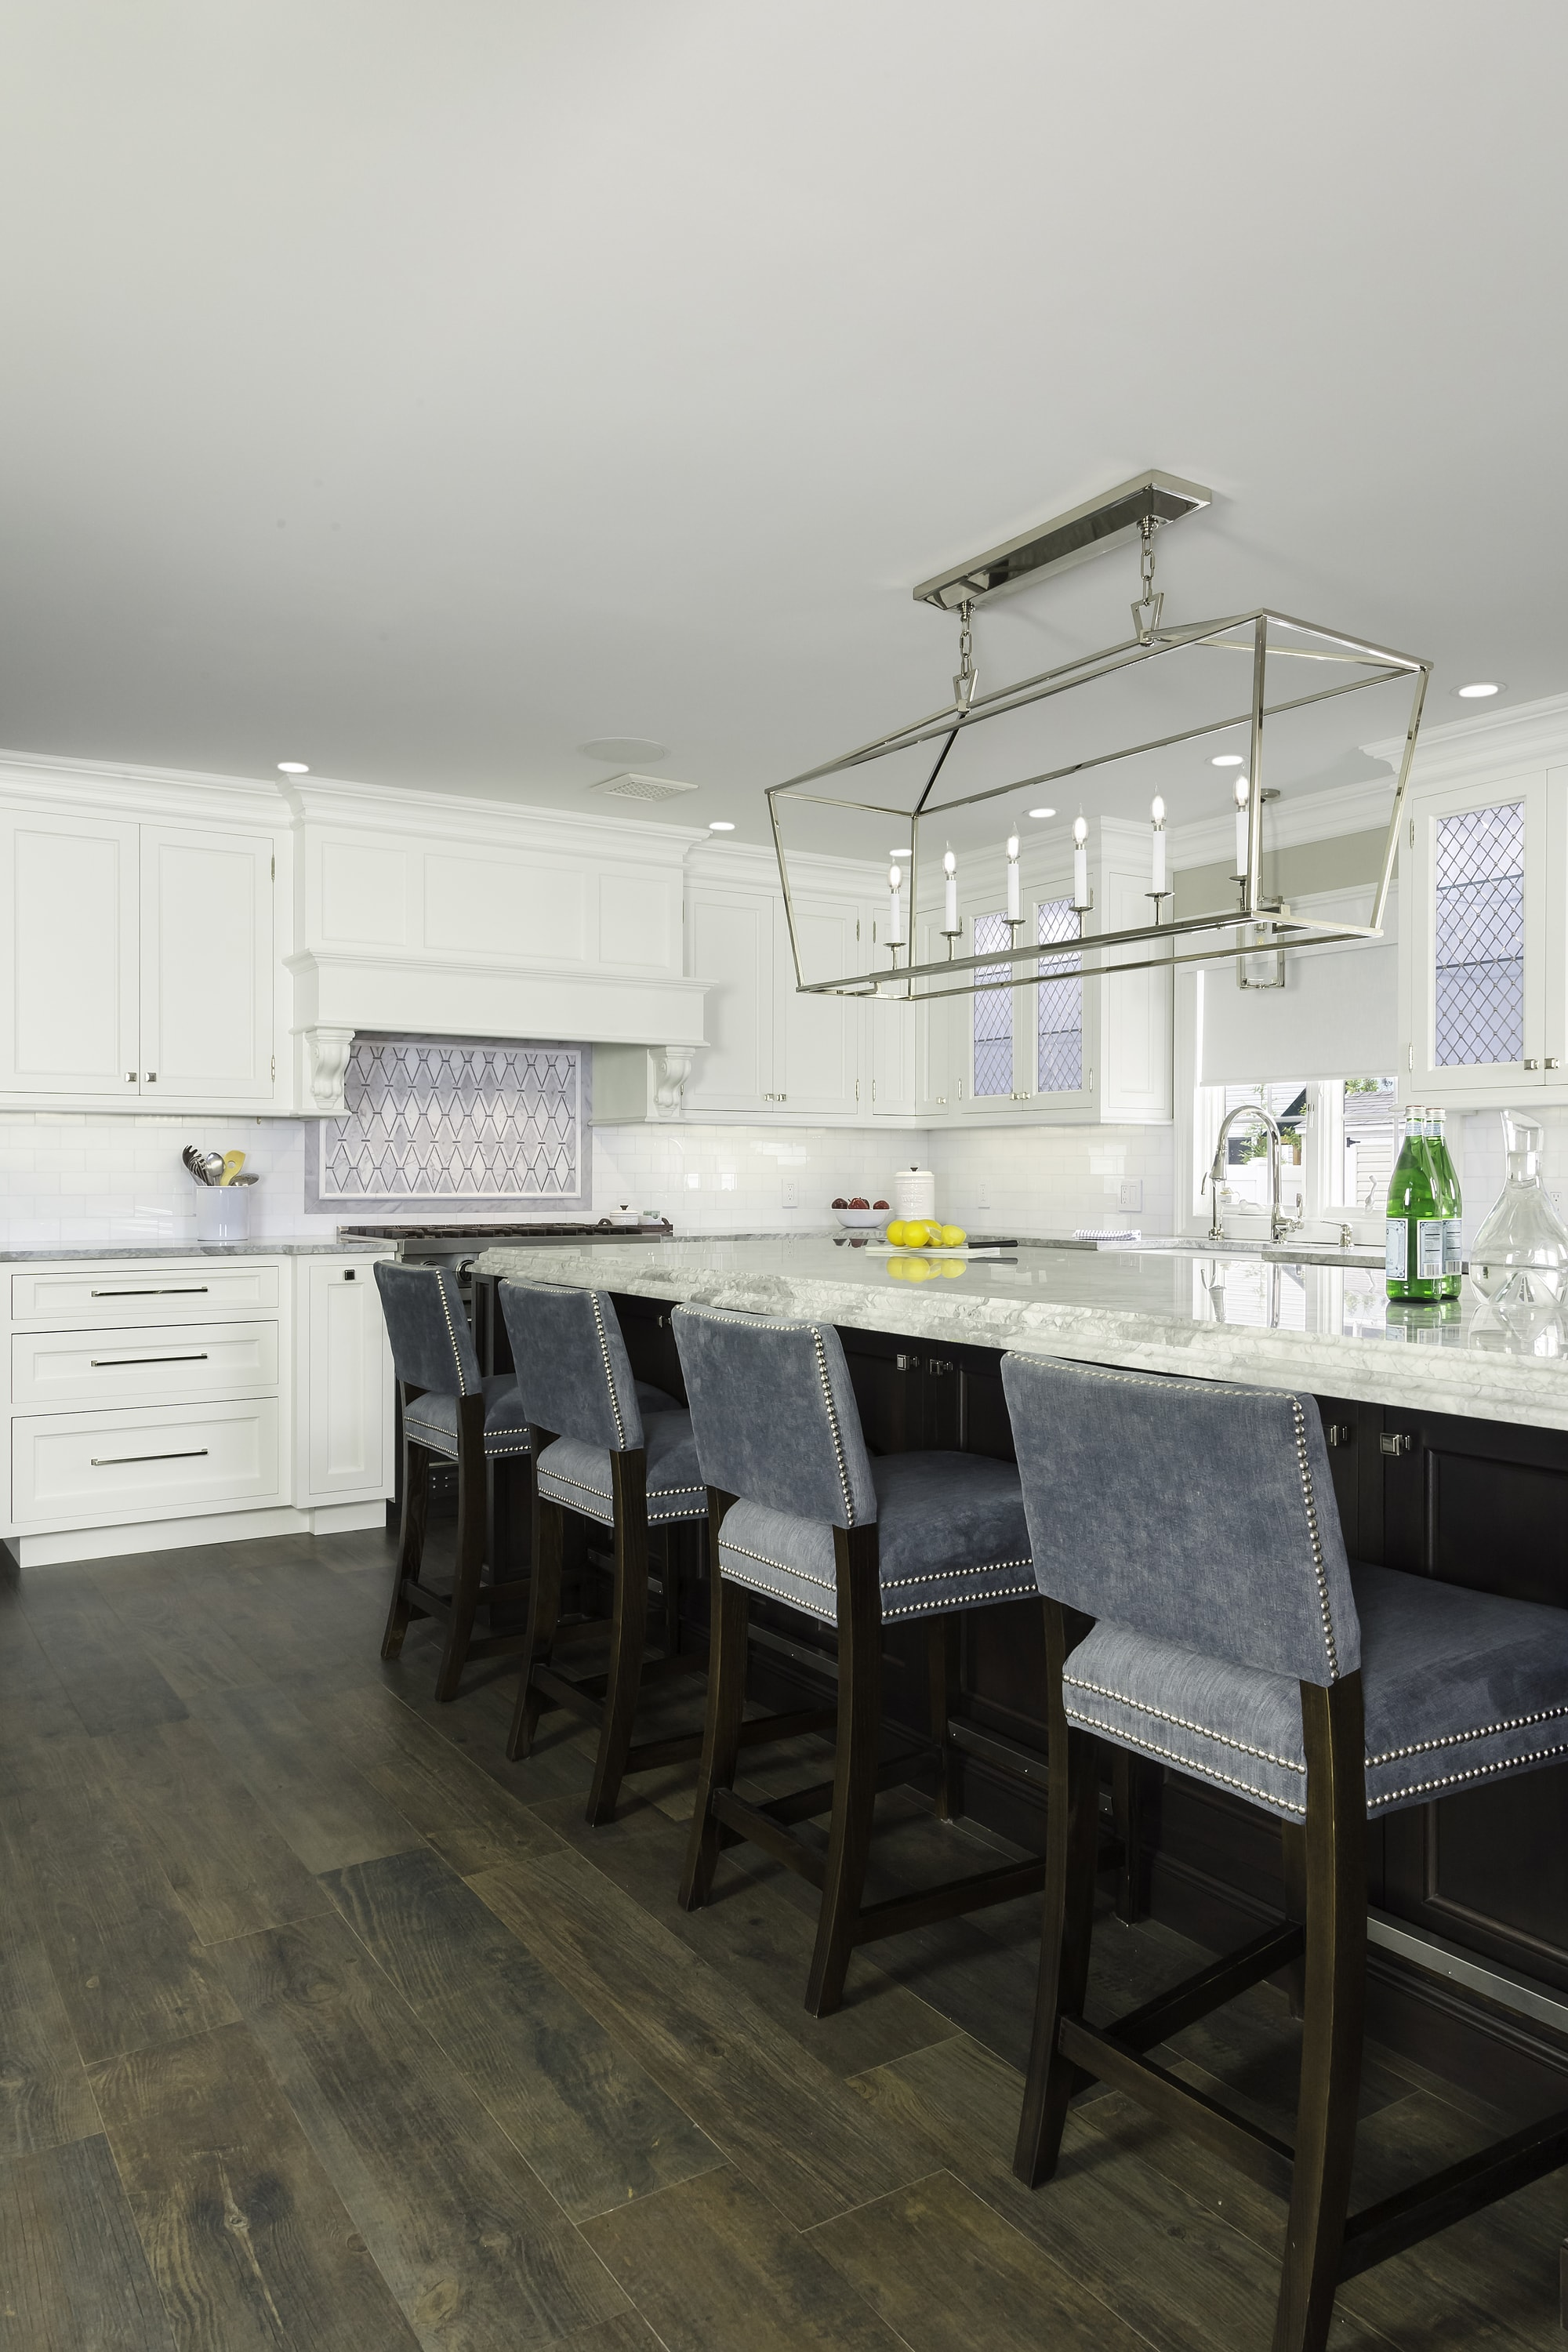 Transitional style kitchen with with hardwood floor